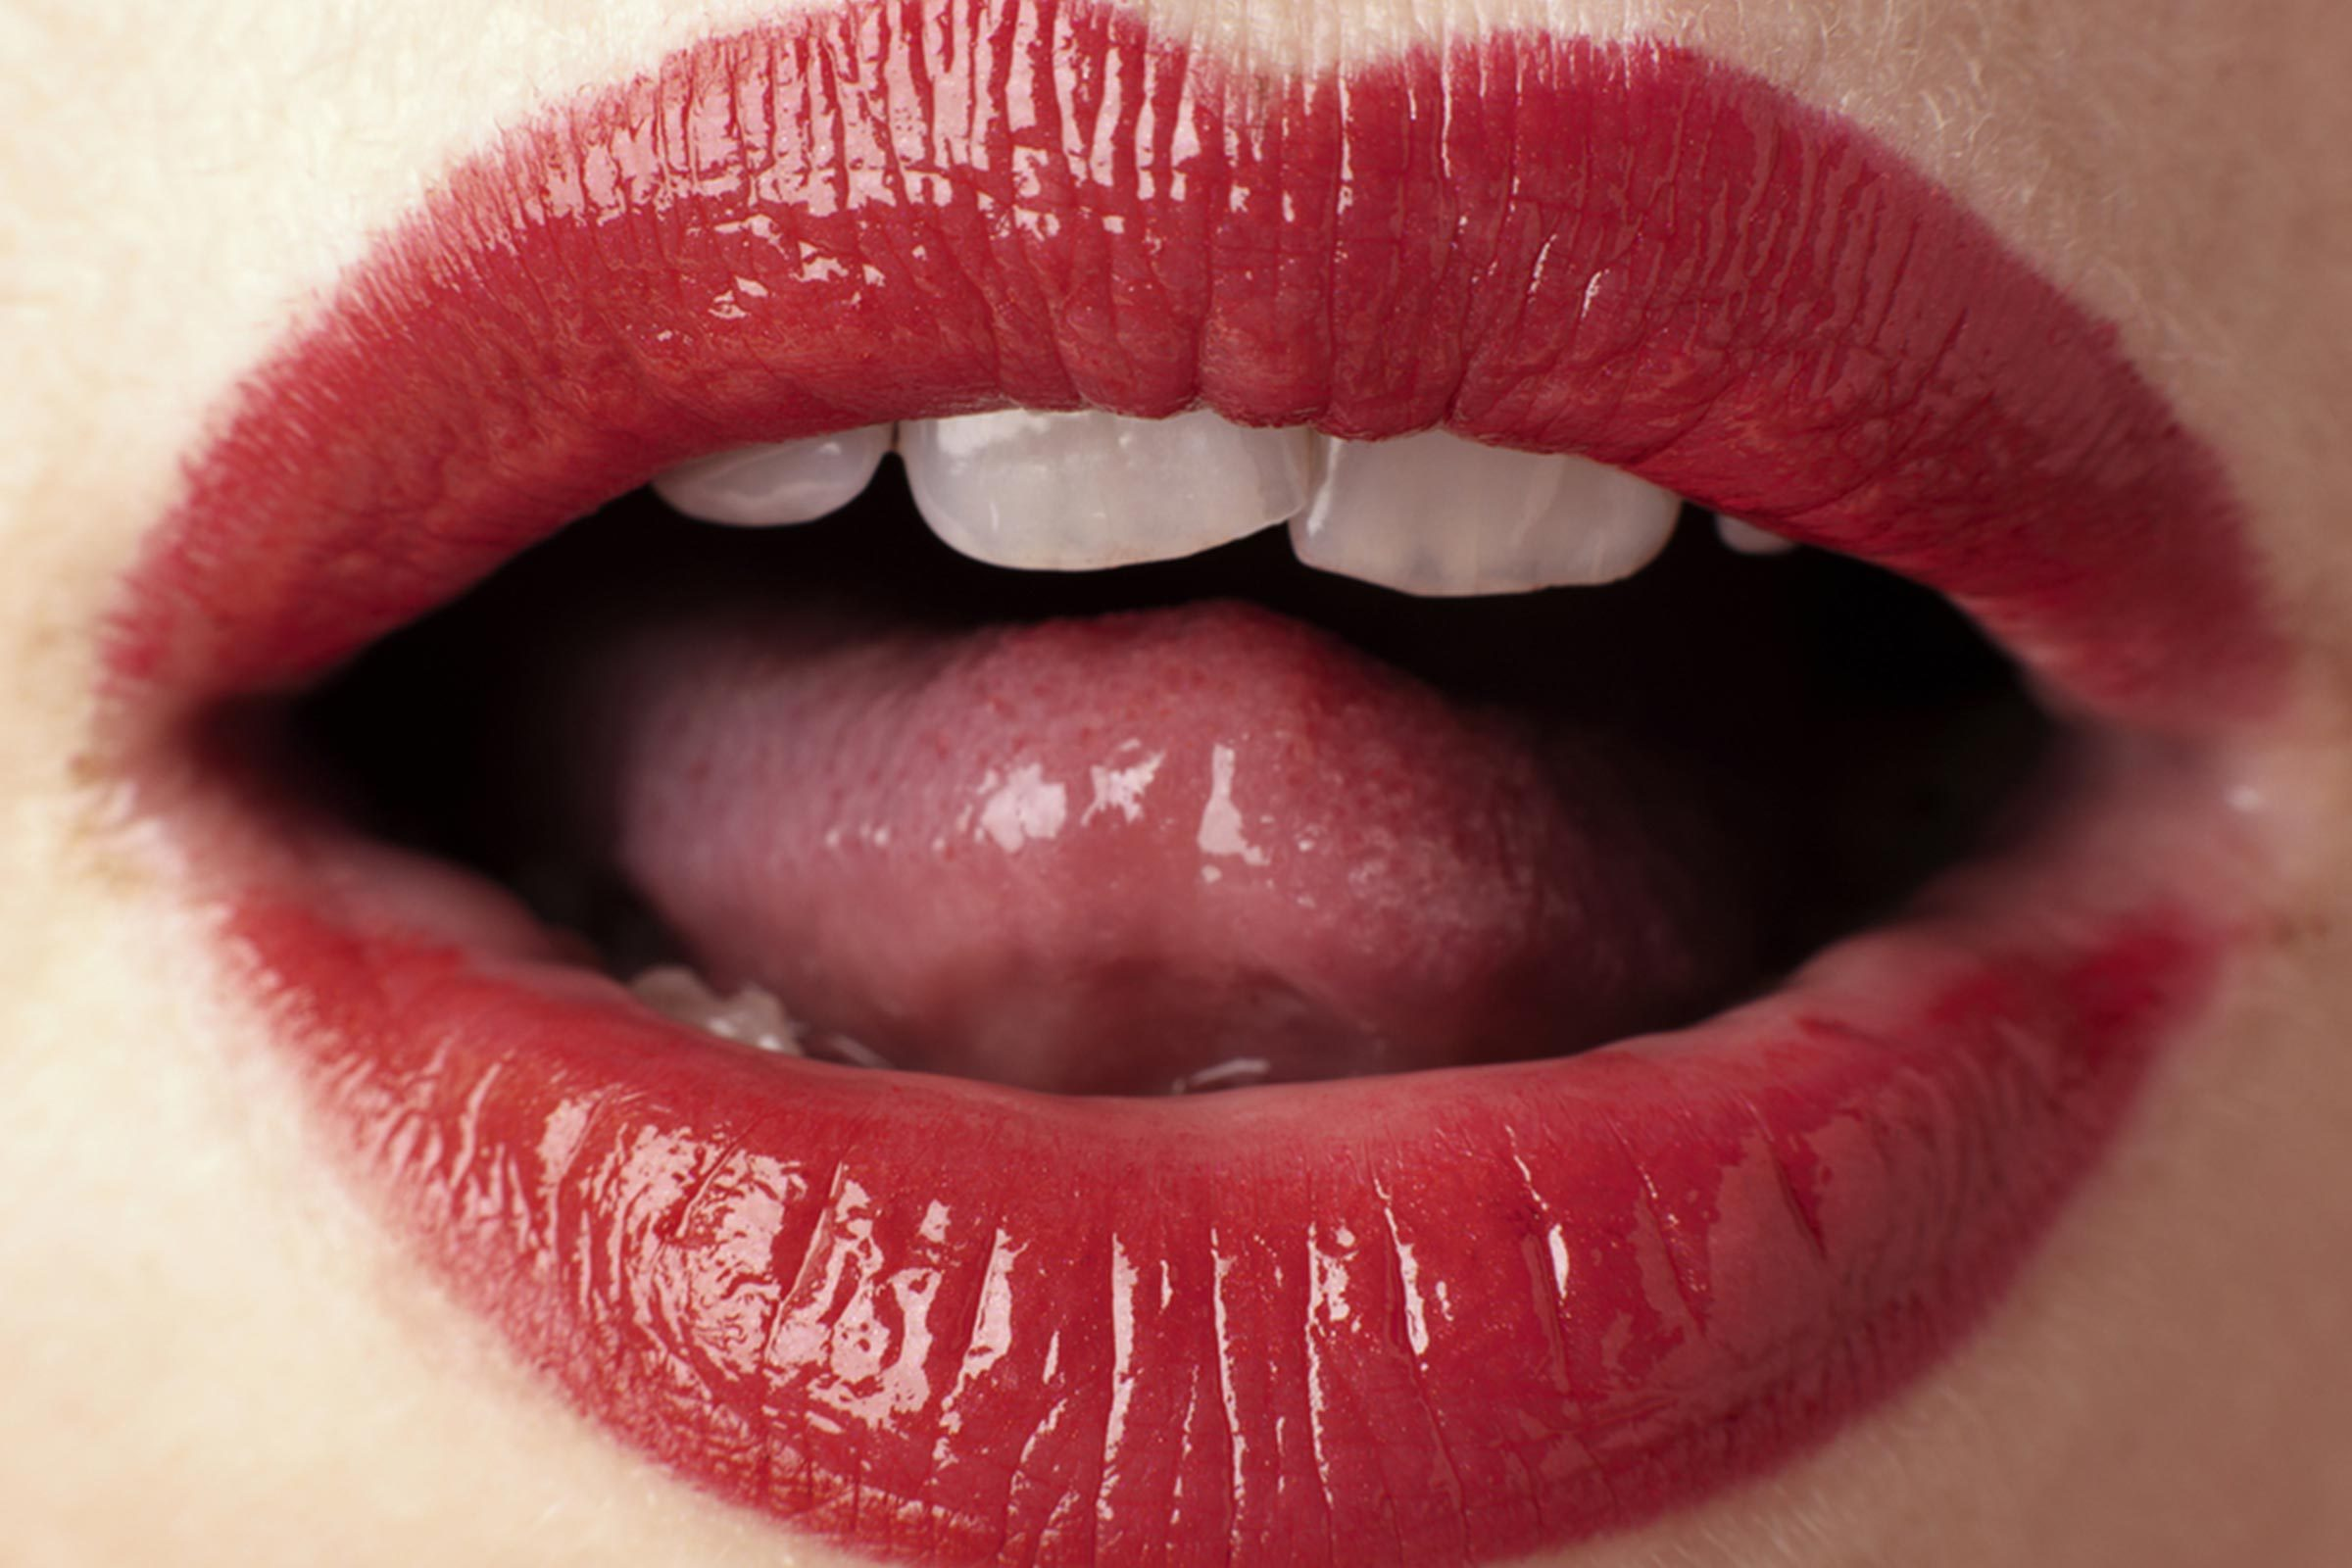 Close-up of woman's red lips